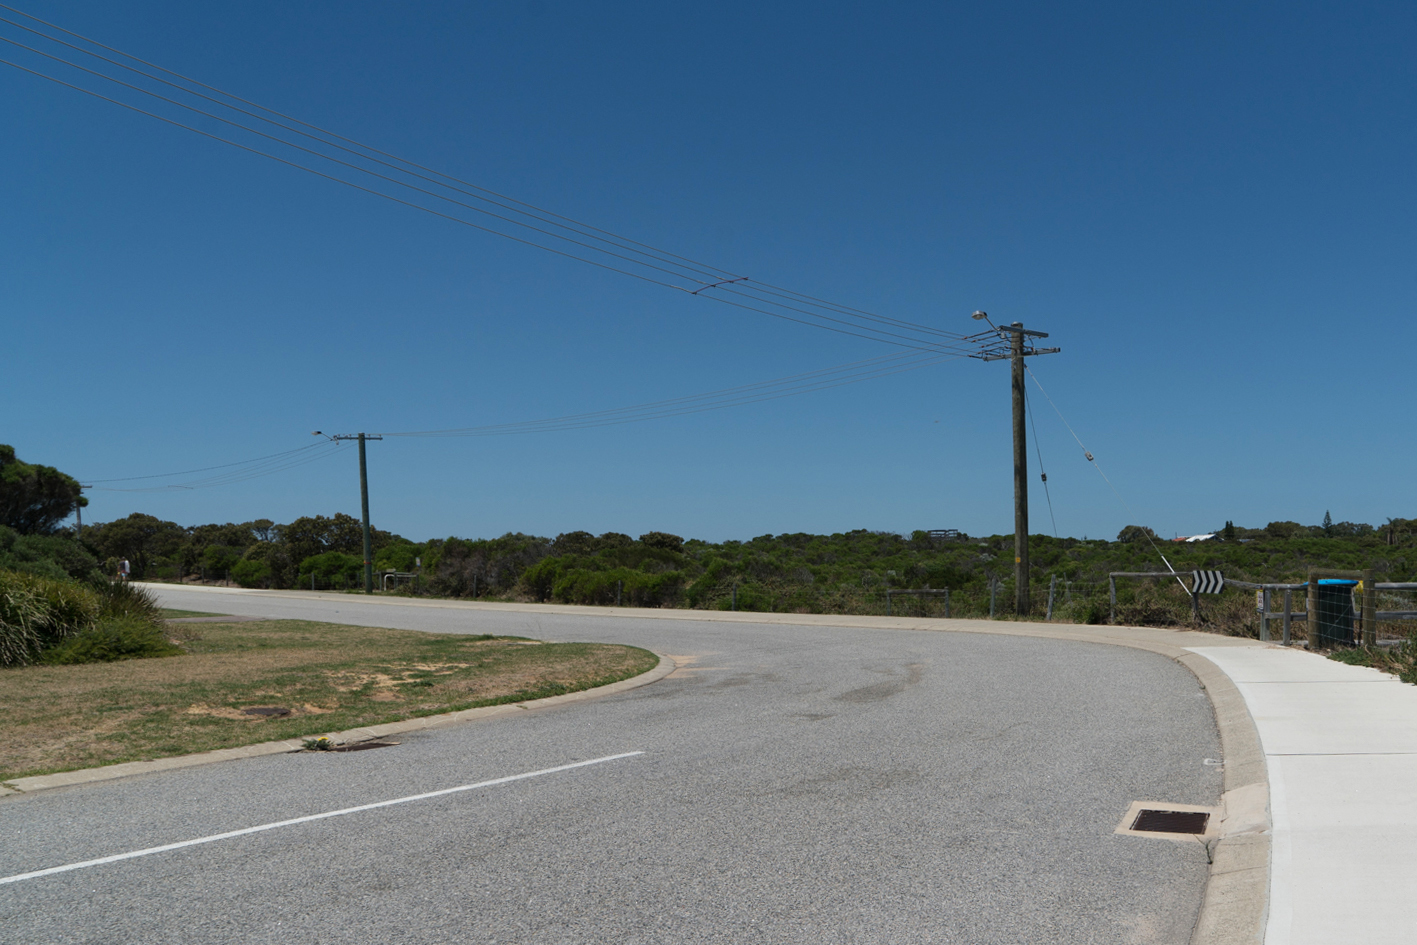 Plate 5: Next coastal path – the start can be seen just around the bend in the road and next to the lamp post